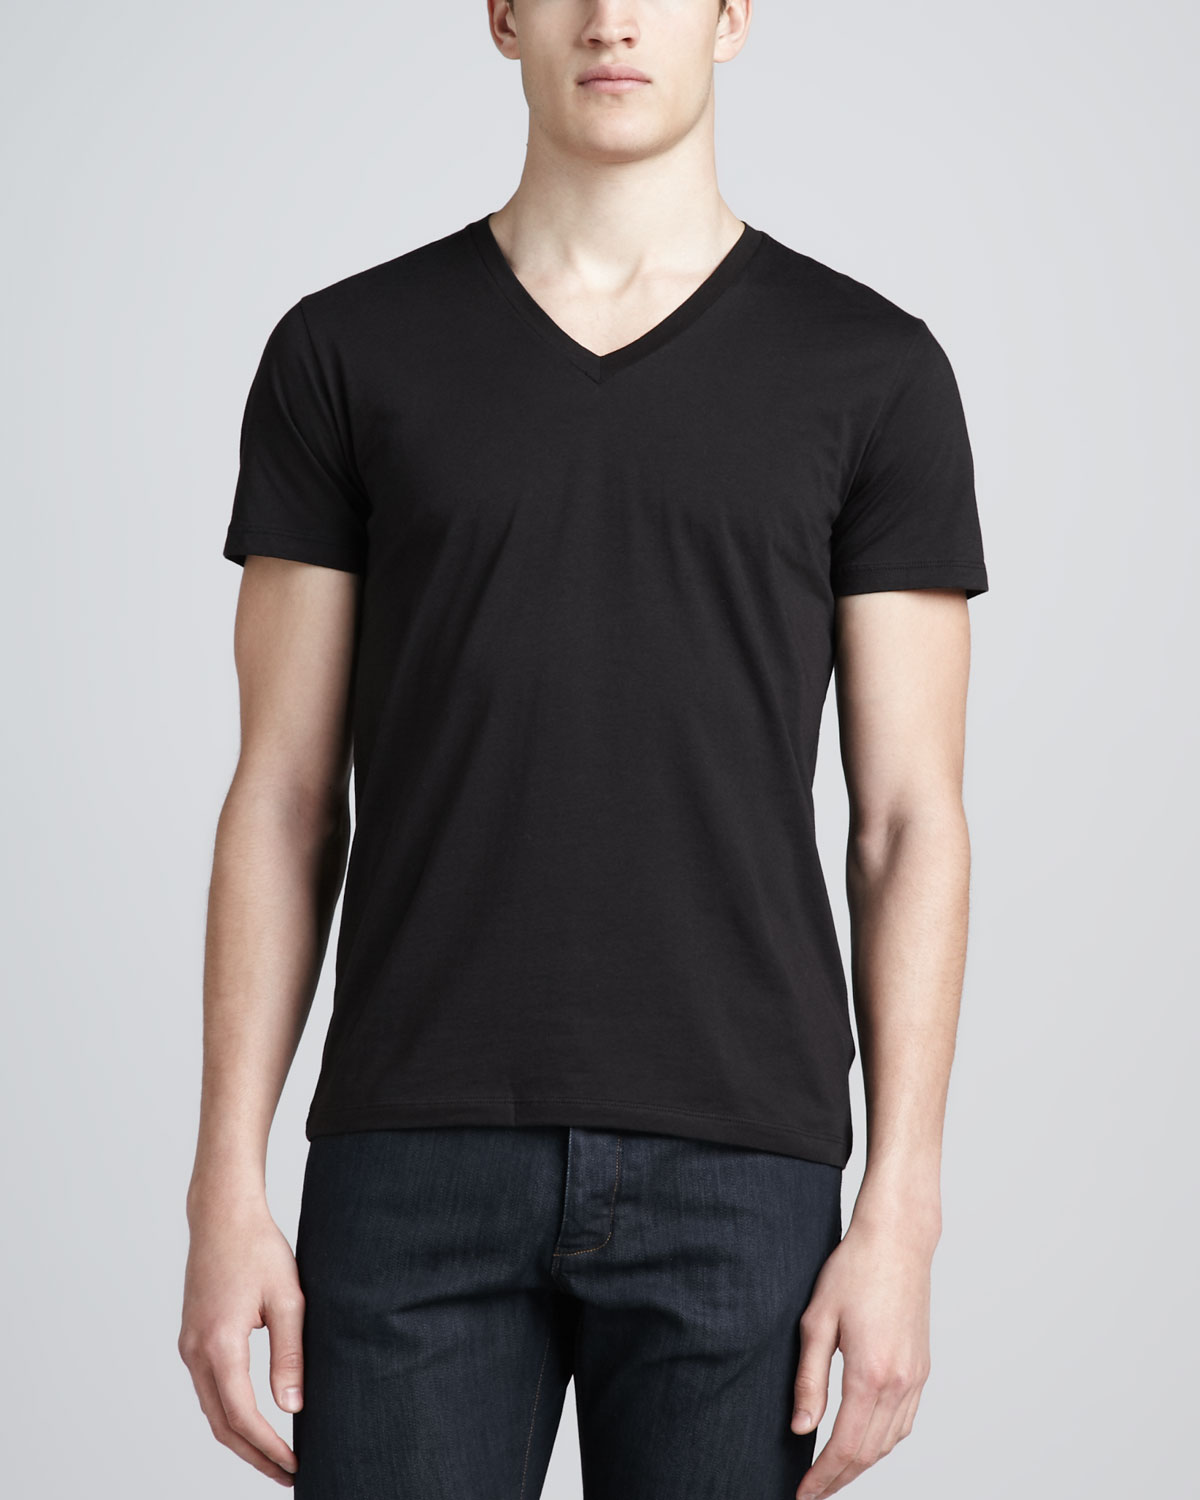 Theory v neck silk cotton t shirt in black for men lyst for Cotton silk tee shirts